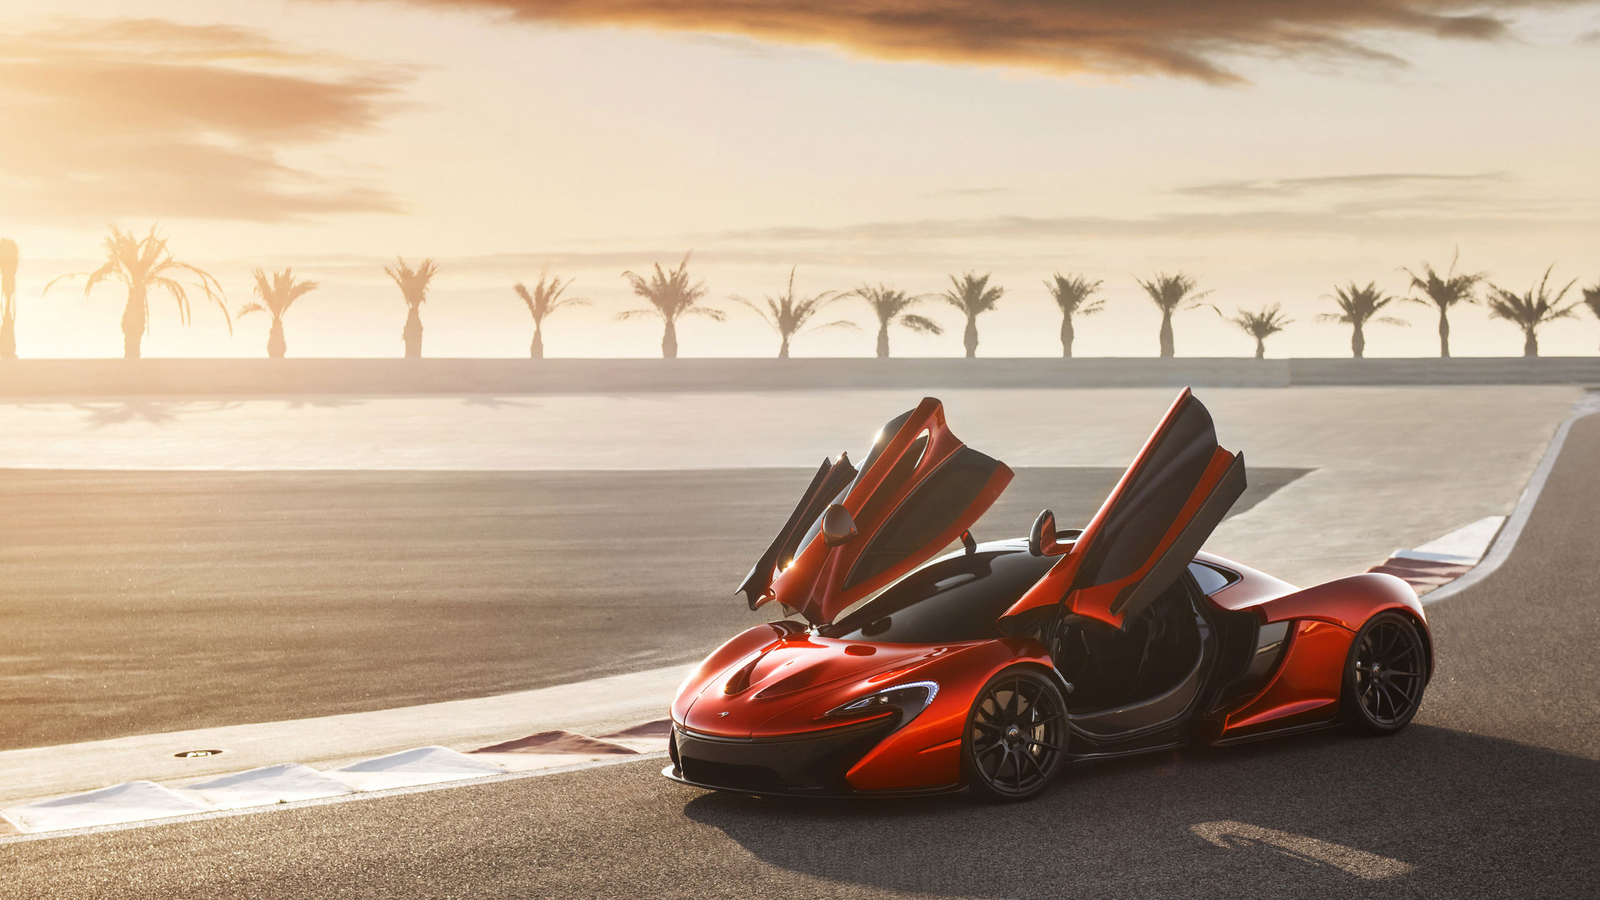 McLaren supercar wallpaper download 49700